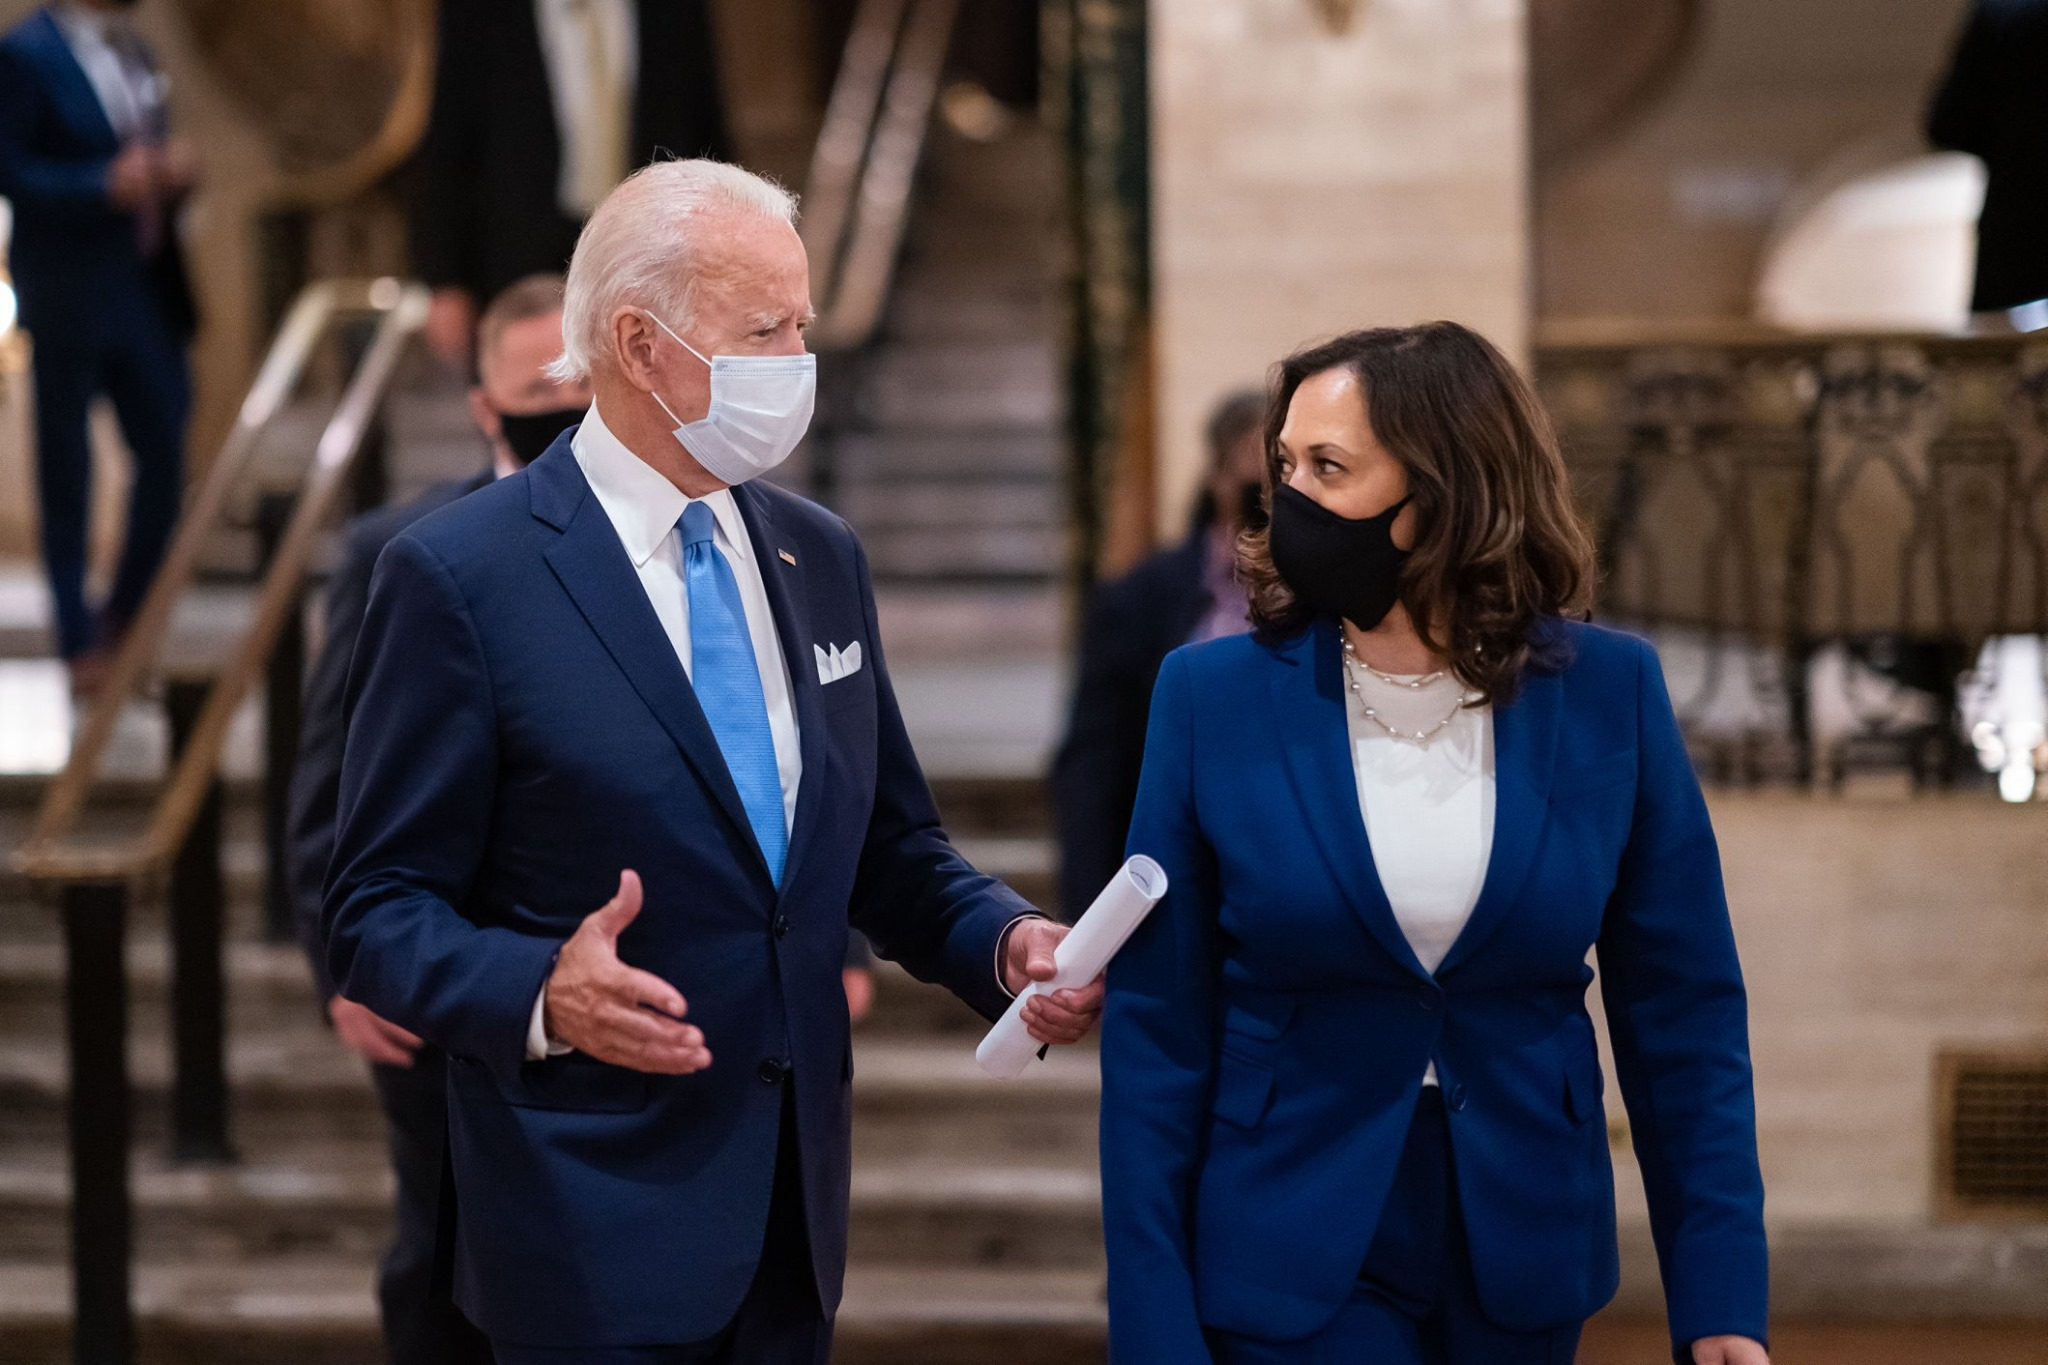 white man with grey hair navy suit and blue tie wearing a mask talking to black woman with shoulder length brown hair wearing a black mask with a navy suit jacket and white shirt